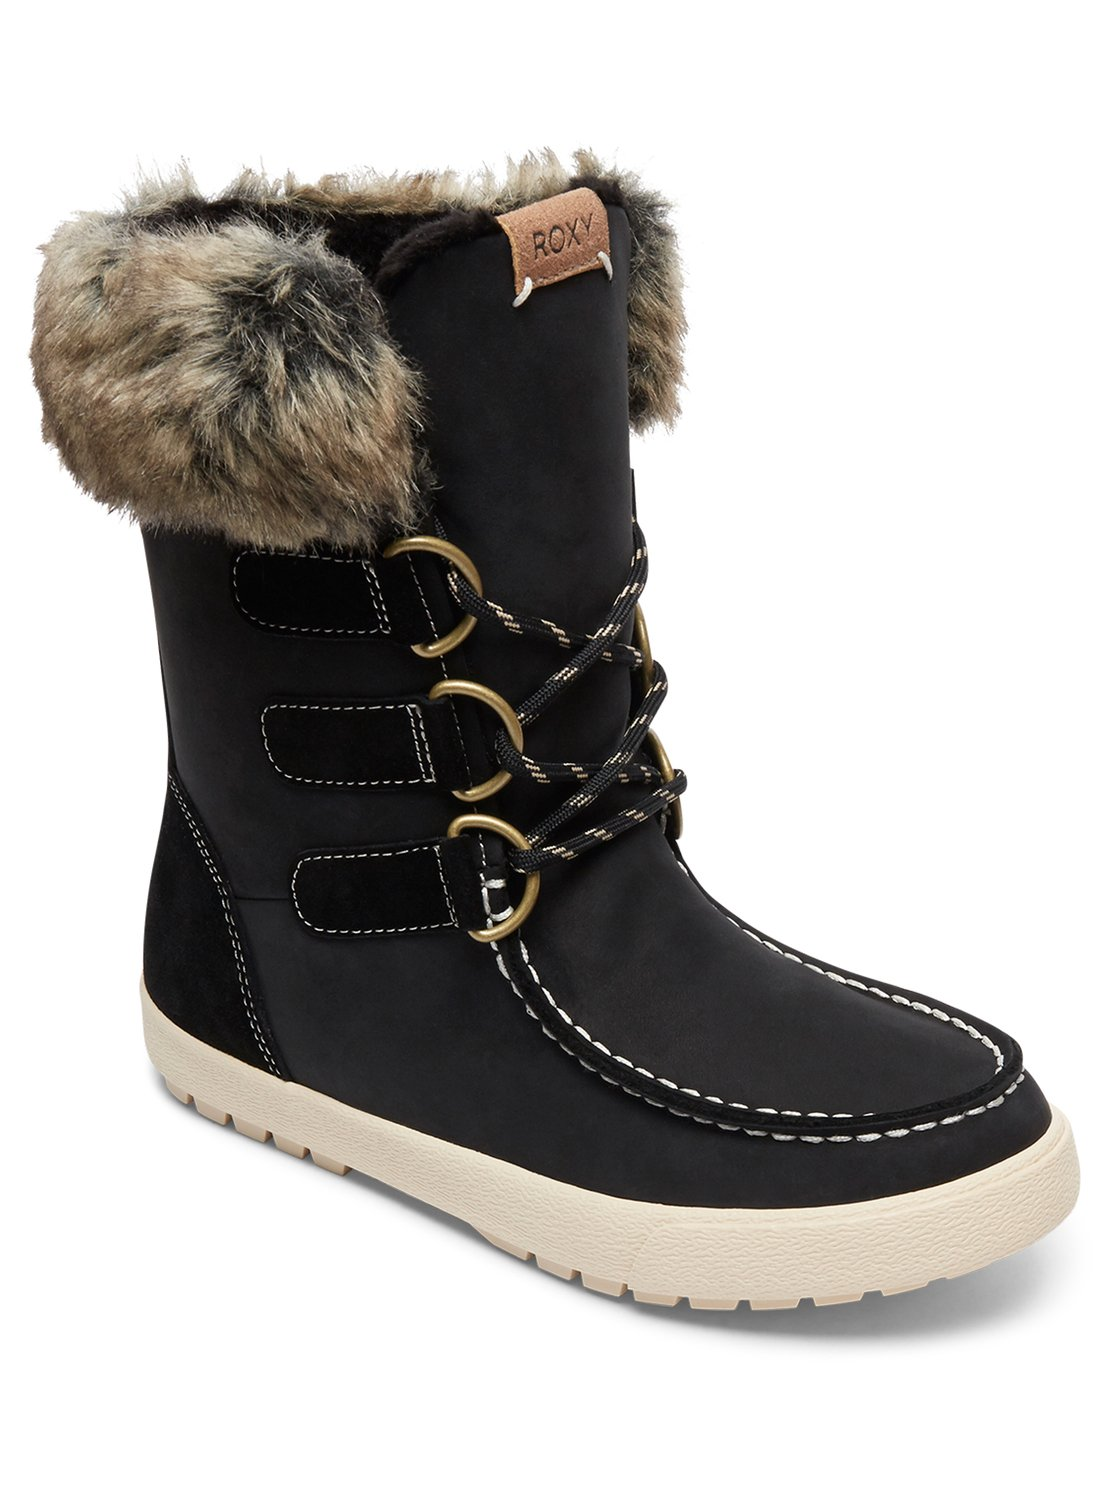 Womens Rainier Snow Boots clearance outlet store get authentic online cheap shopping online discount perfect view sale online x0Xs40